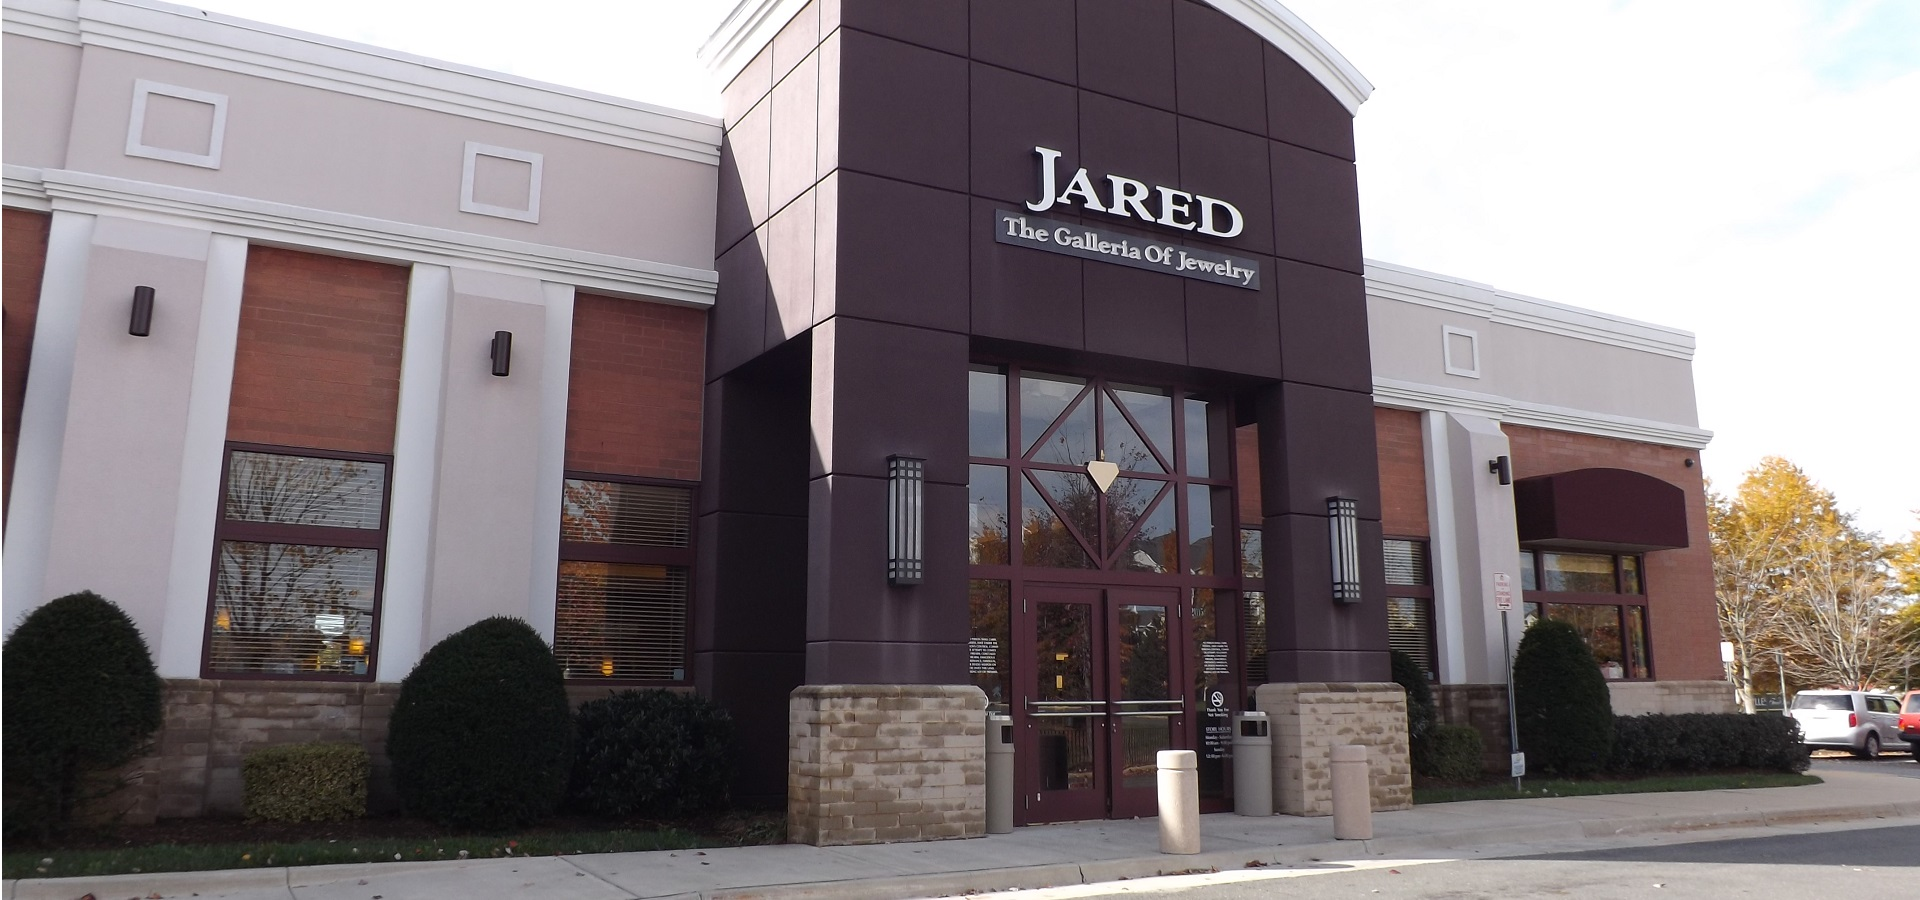 Jared The Galleria of Jewelry in Dulles VA Dulles Town Center